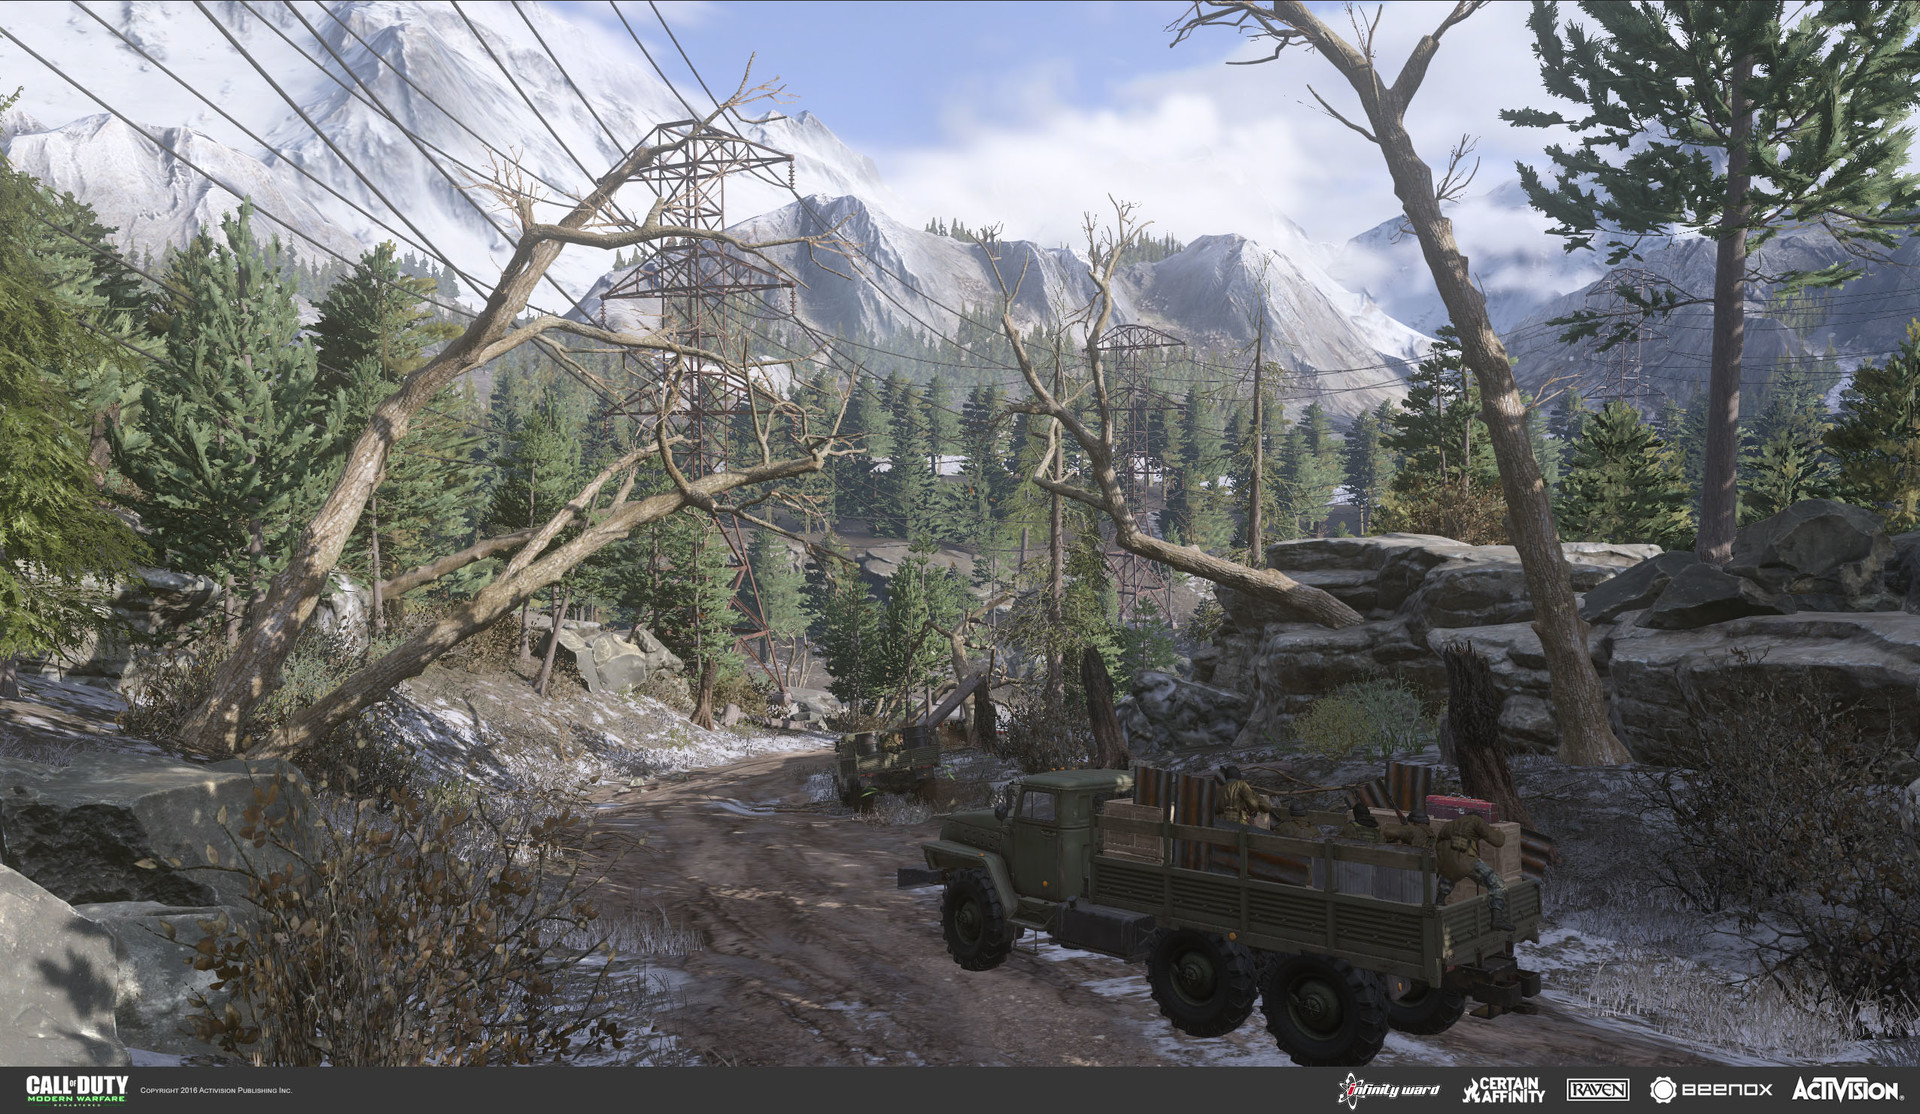 ArtStation - Call of Duty: Modern Warfare Remastered - Game Over